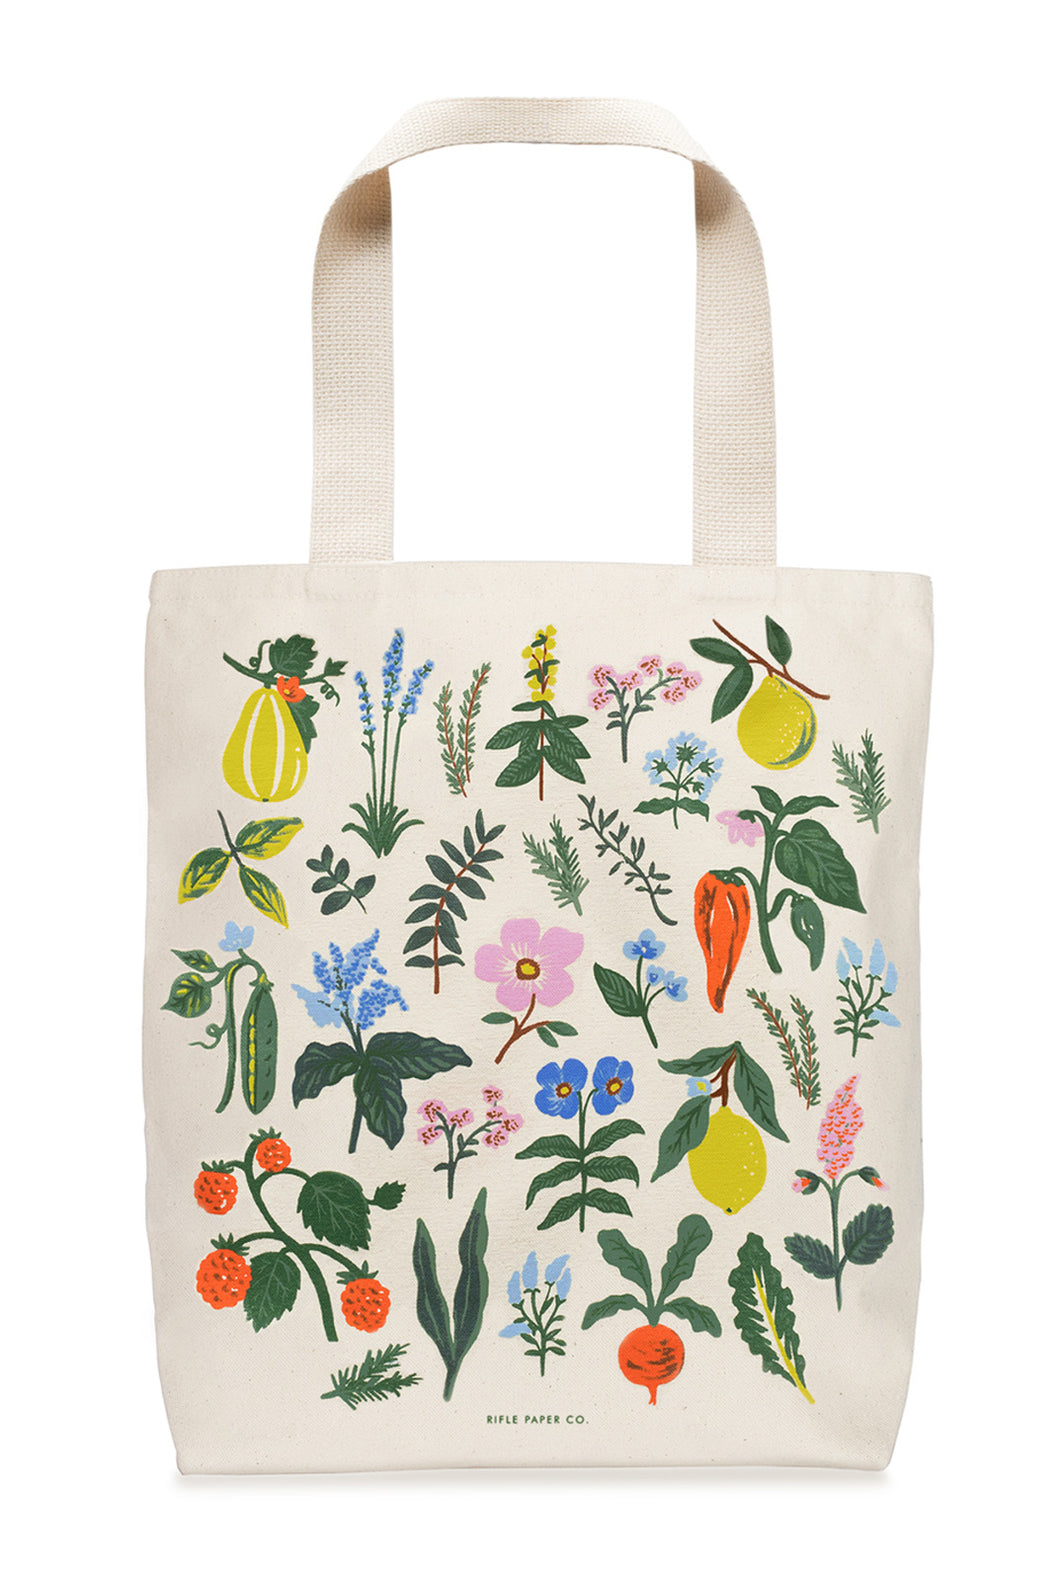 Rifle Paper Co - Tote Bag - Herb Garden